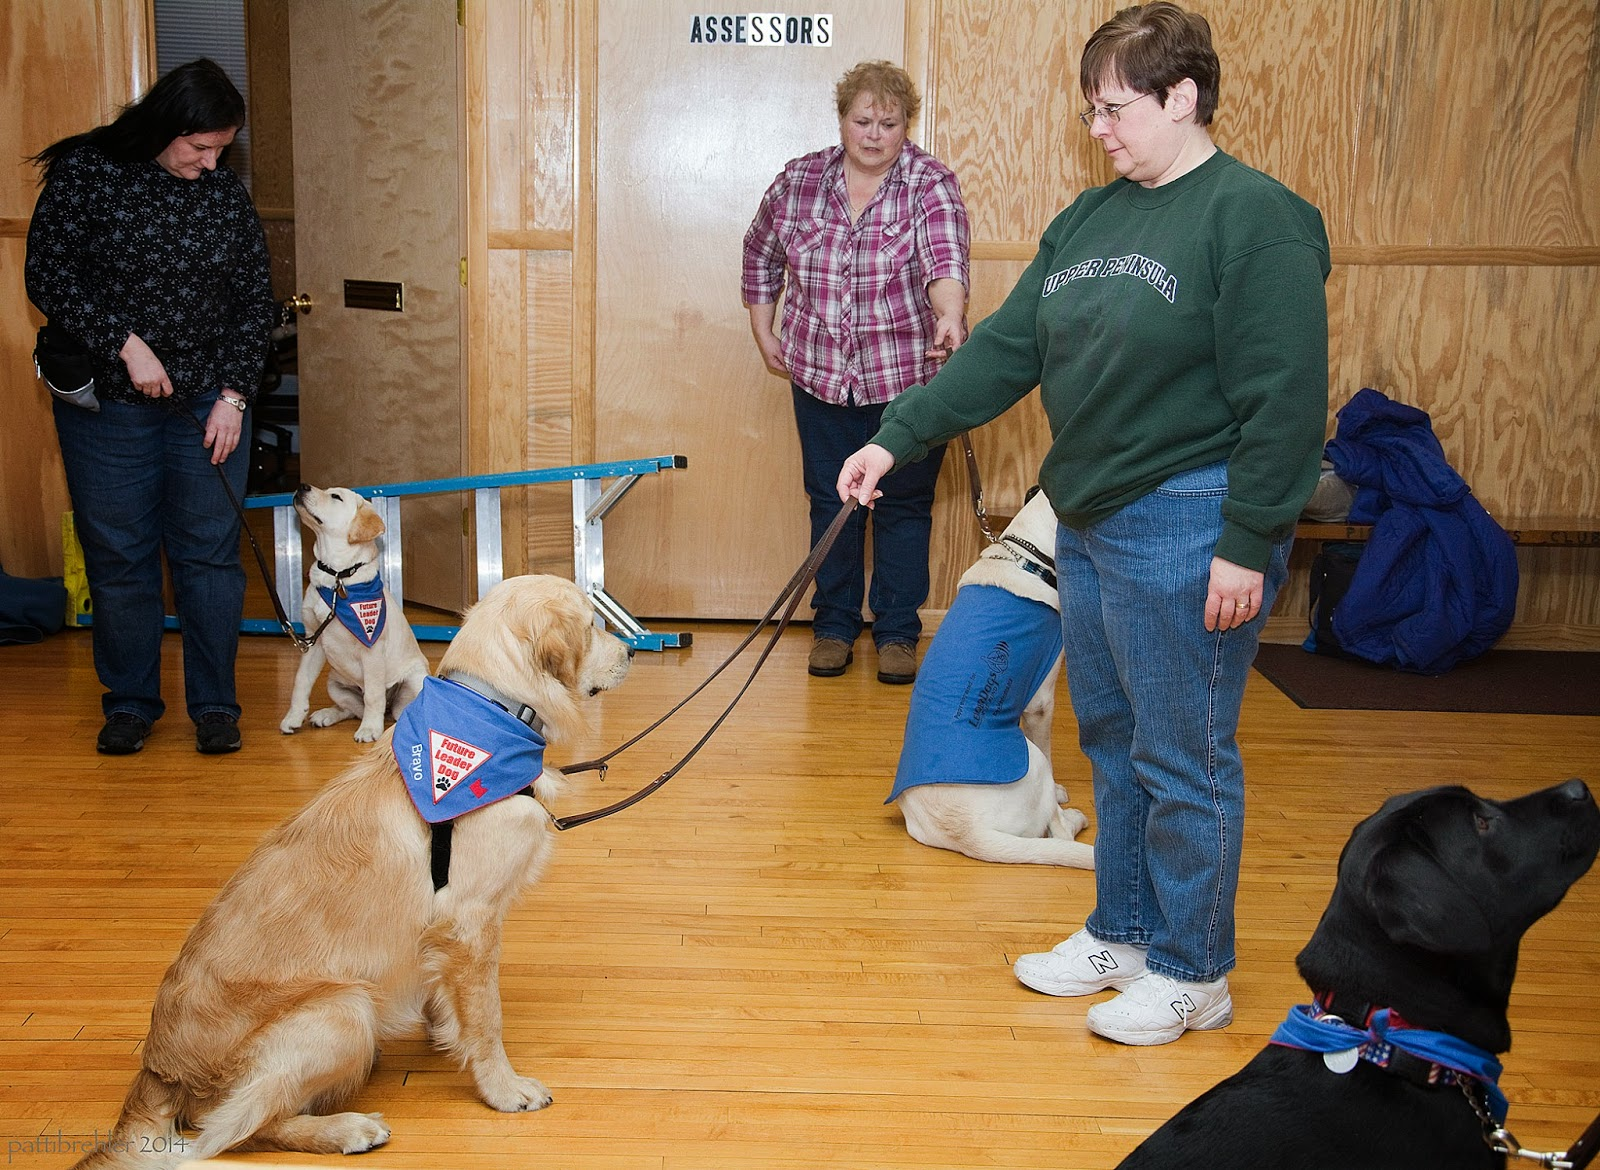 Three women are standing and holding the leashes of three yellow labs. The woman on the left is dressed in a black with white markings on her shirt and blue jeans - a small yellow lab is sitting on her left side wearing a blue Future Leader Dog bandana, the pup is looking up at her and she is looking down at the pup. The woman in the middle is close to the far wall and is wearing a red and white plaid shirt and blue jeans, she has short curly hair. The yellow lab is sitting in front of her facing her and is wearing a blue Future Leader Dog vest. The woman on the right is wearing a green sweatshirt and blue jeans, she has short brown hair. The yellow lab she has is sitting a few feet in front of her facing her and is wearing a Future Leader Dog bandana. There is a black lab in the corner of the picture on the right side, looking up at someone out of view. The floor is wood, as are the walls. There is a blue and sliver ladder lying on its side behind the woman dressed in black on the left. There is a wood bench seat on the right side against the far wall with a blue jacket drapped on it.